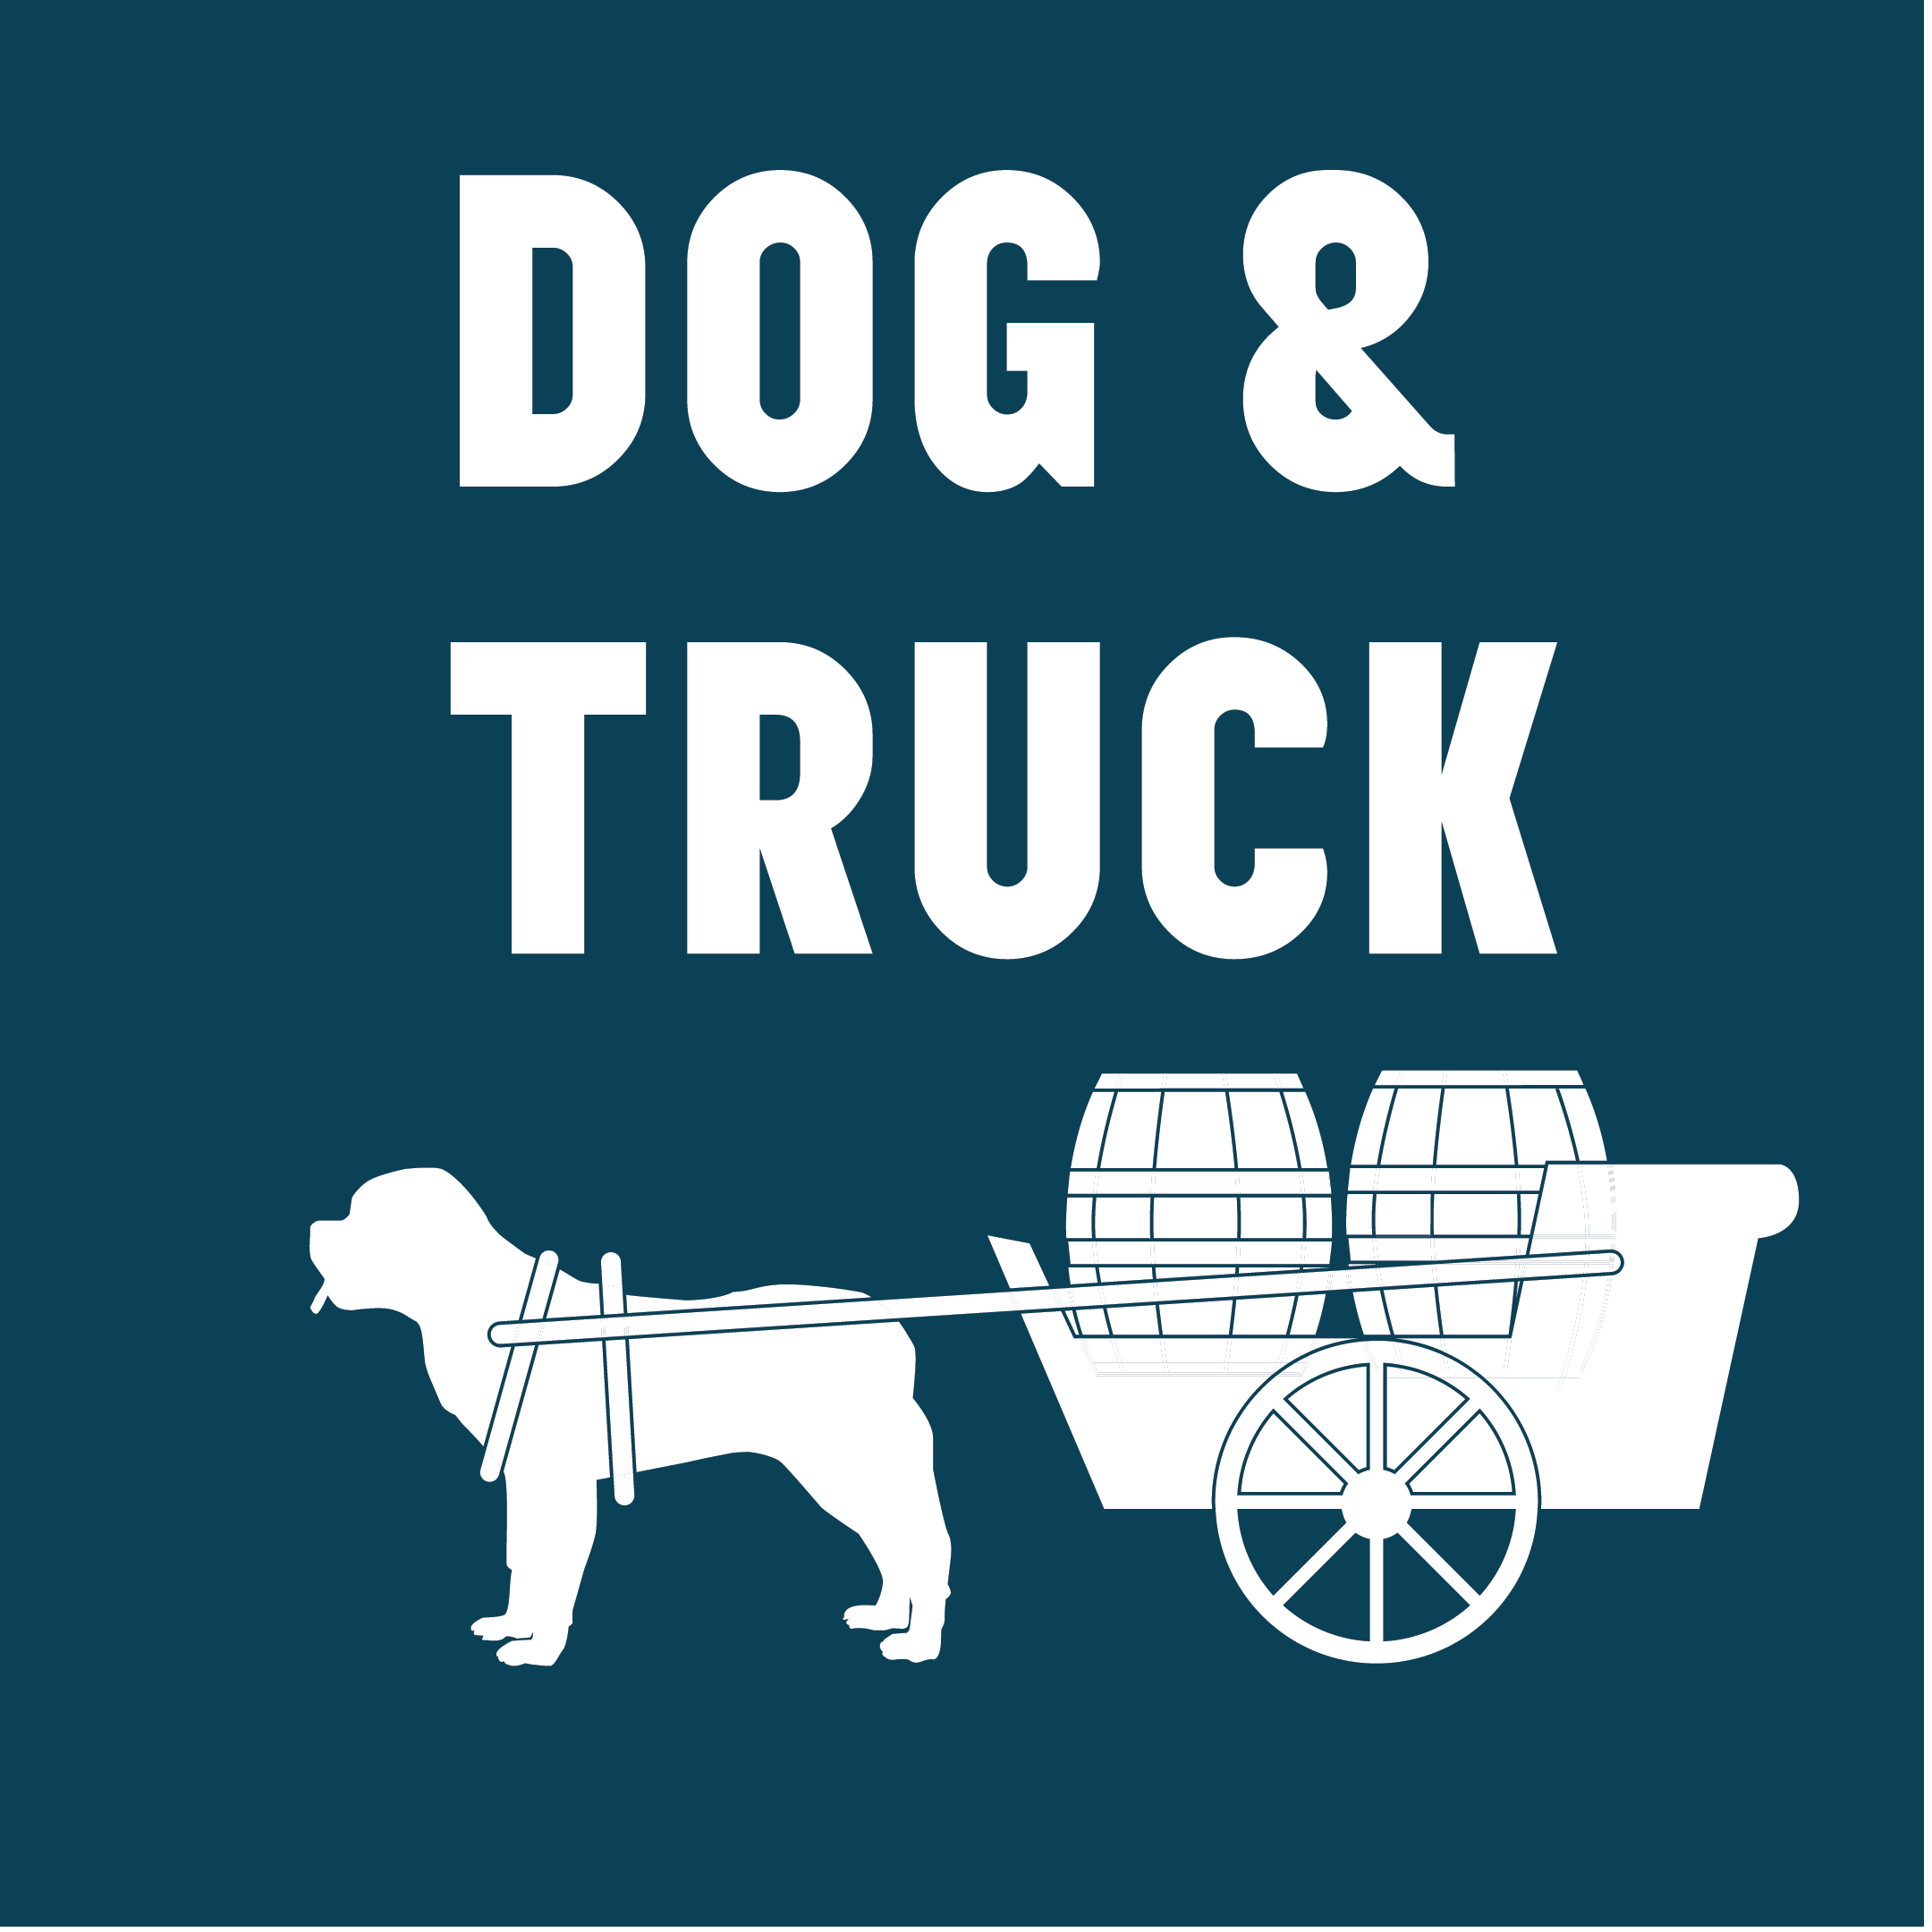 The Dog & Truck